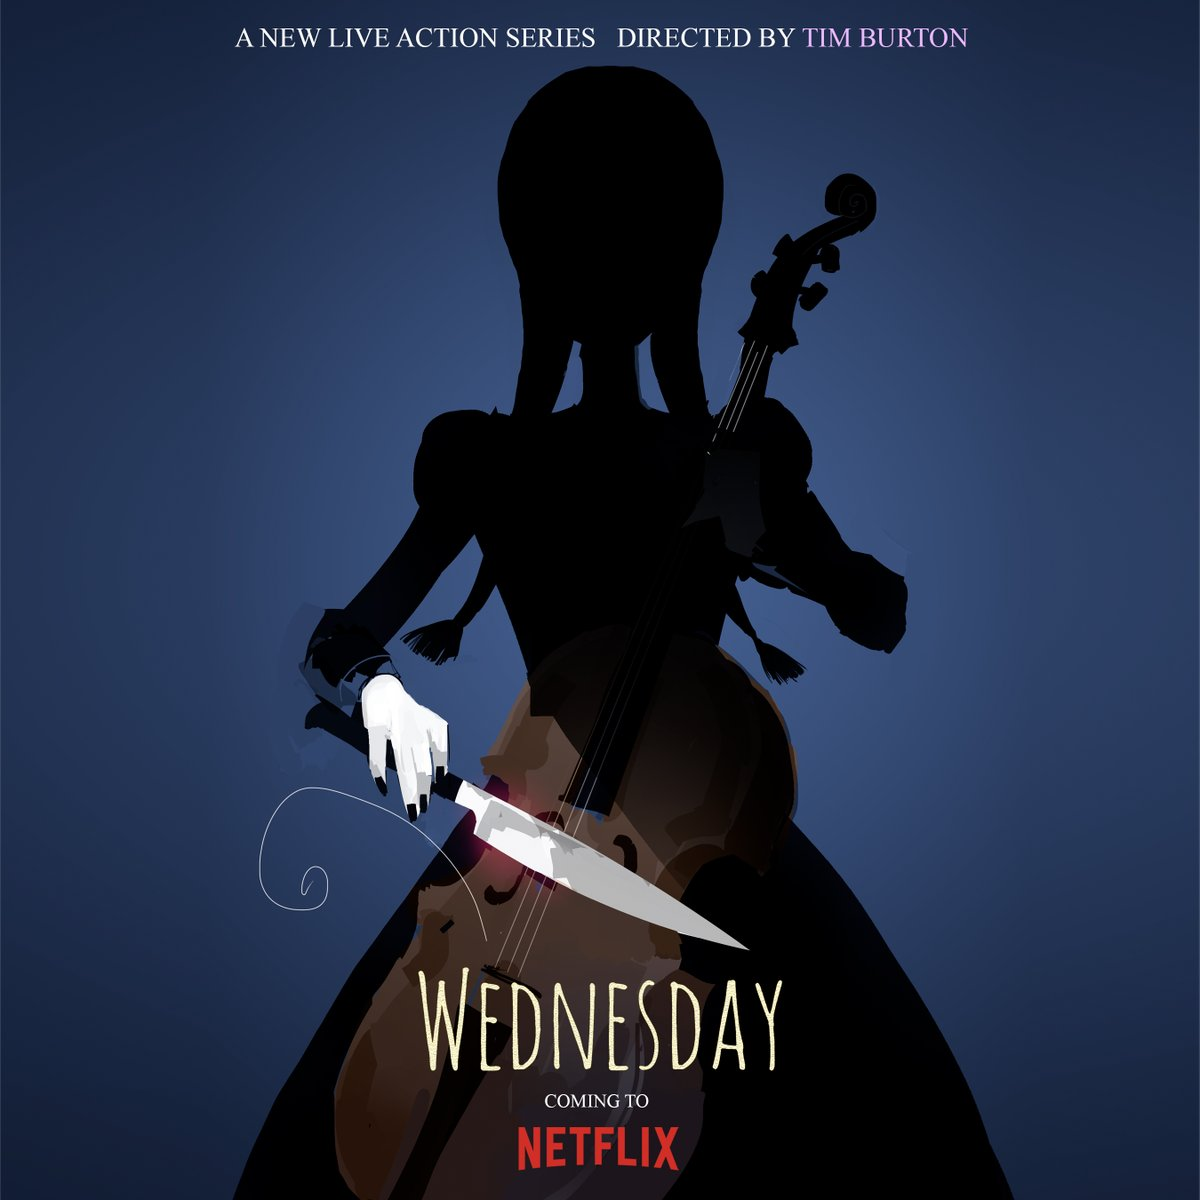 Tim Burton's Rebooting Wednesday For Netflix.